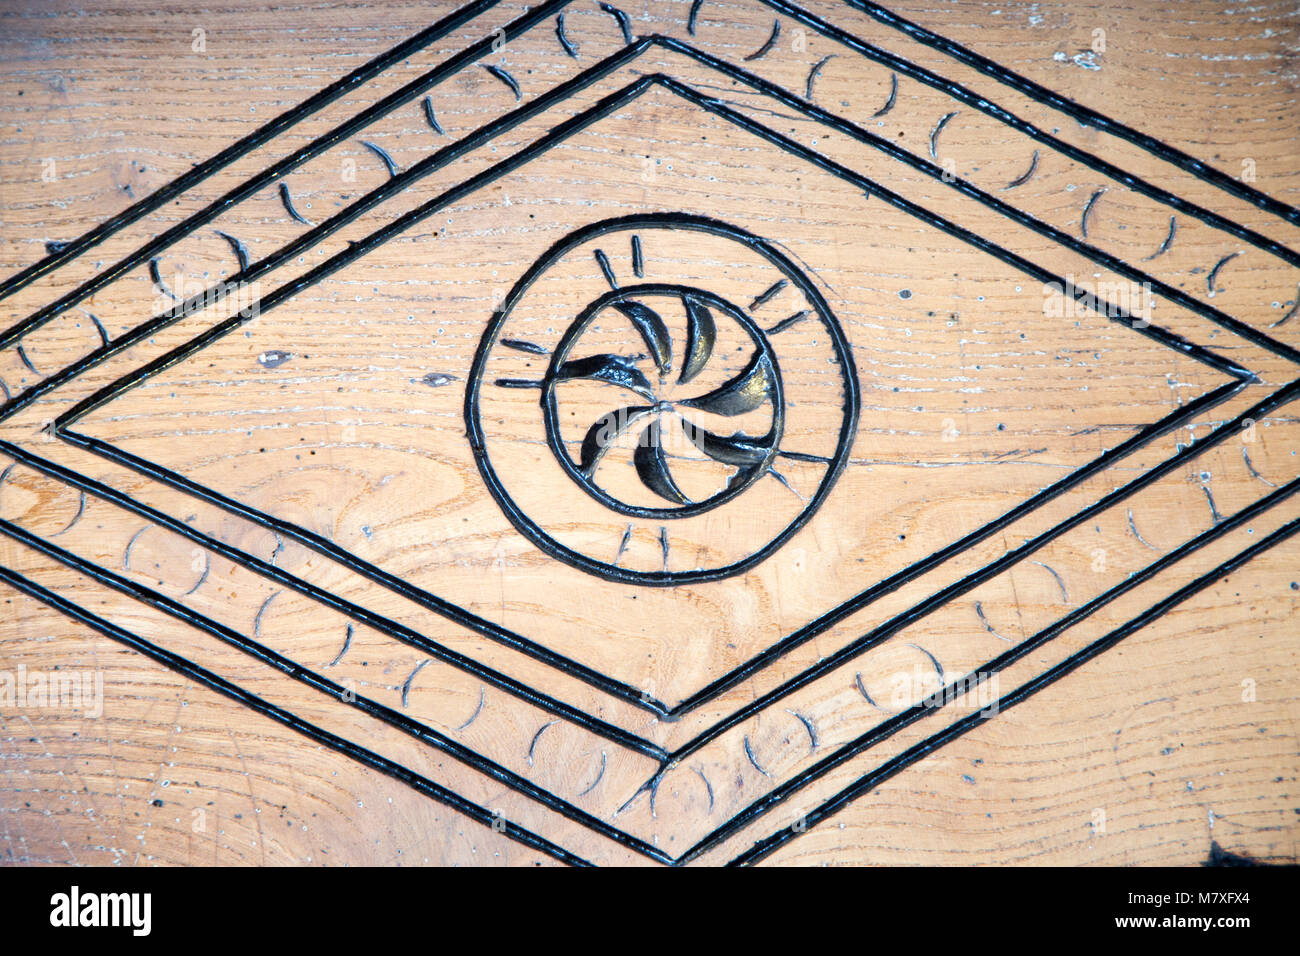 Old carved decorations in wooden fireplace surround of village pub Tilshead, Wiltshire, England, Uk - Stock Image